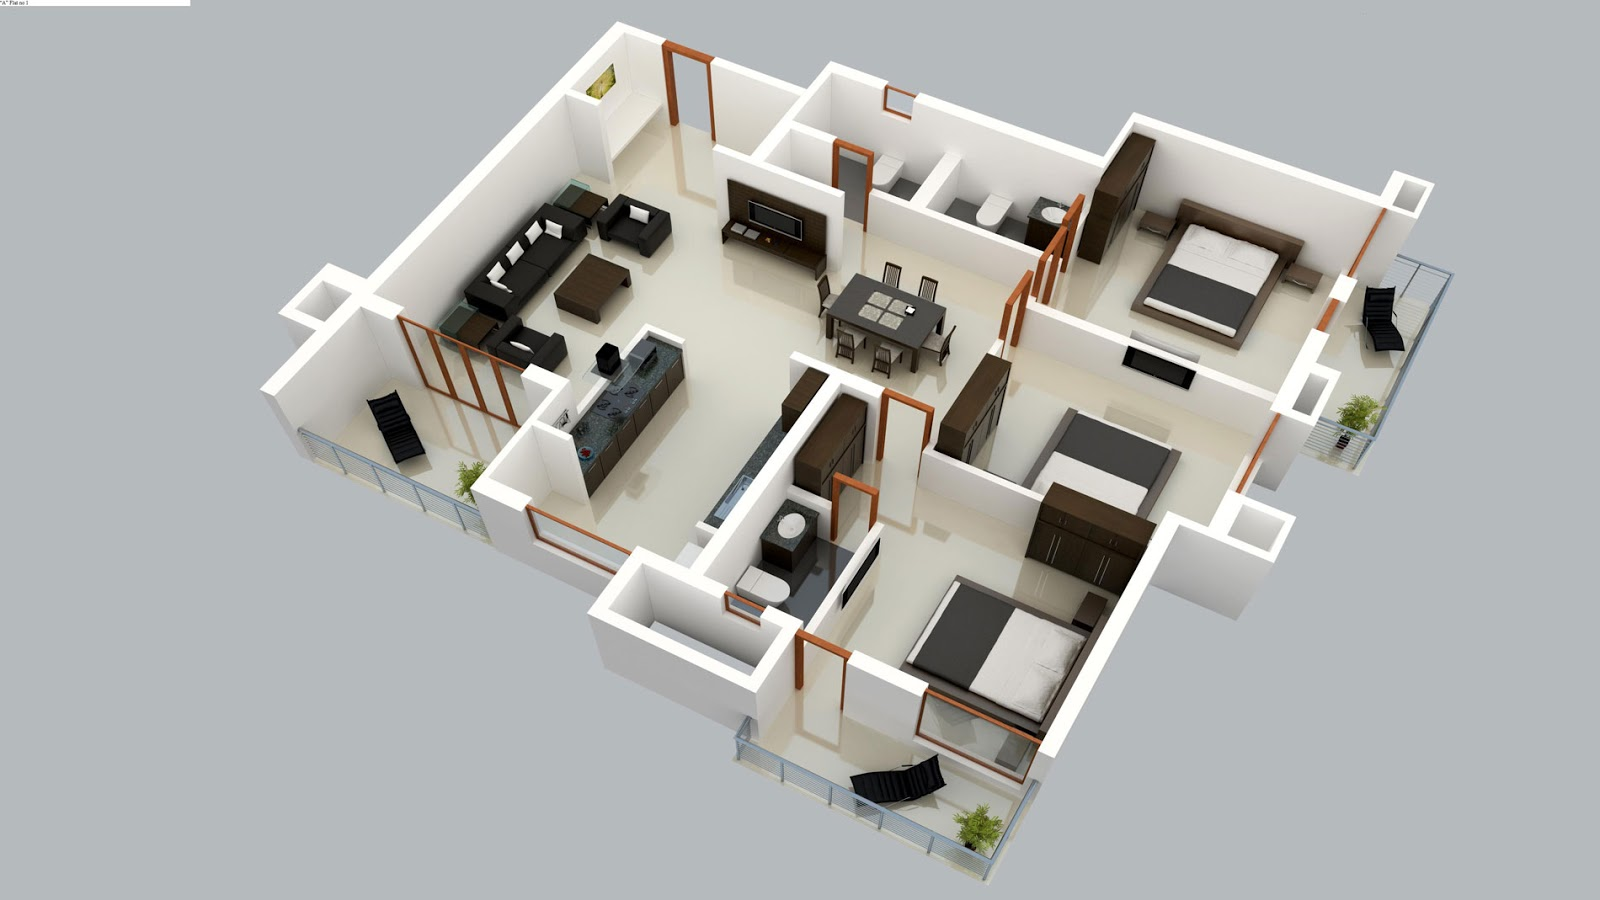 Foundation dezin decor 3d plan layout furniture for Home architecture tools